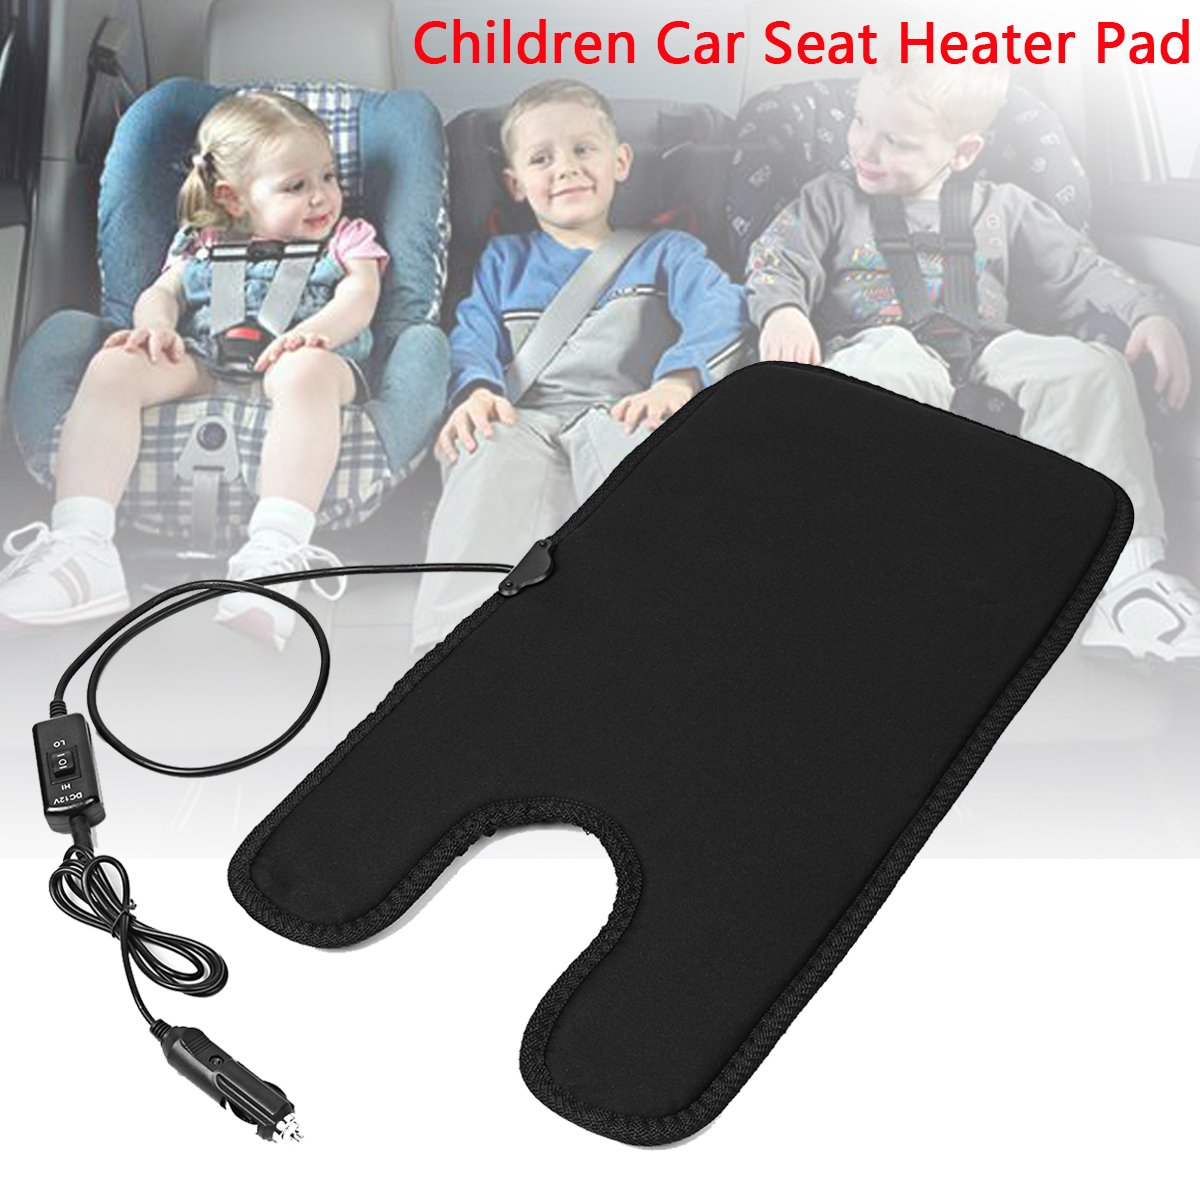 MONNY 4530cm Safety 12V Universal Auto Baby Winter Car Seat Cover Children Warm Seat Heating with Lighter and Switch